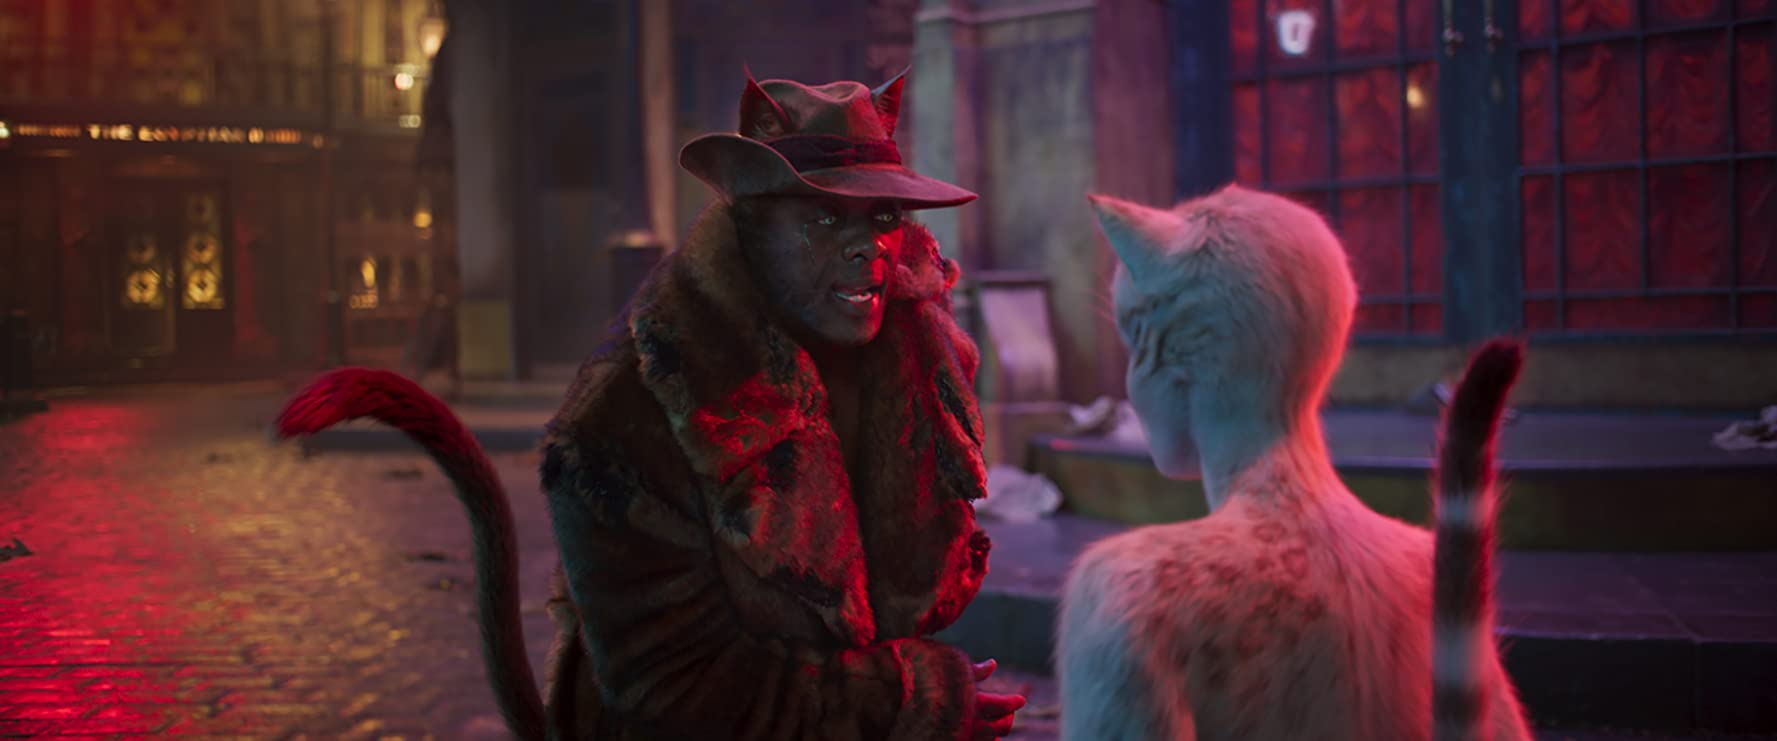 Idris Elba and Francesca Hayward in Cats (2019)